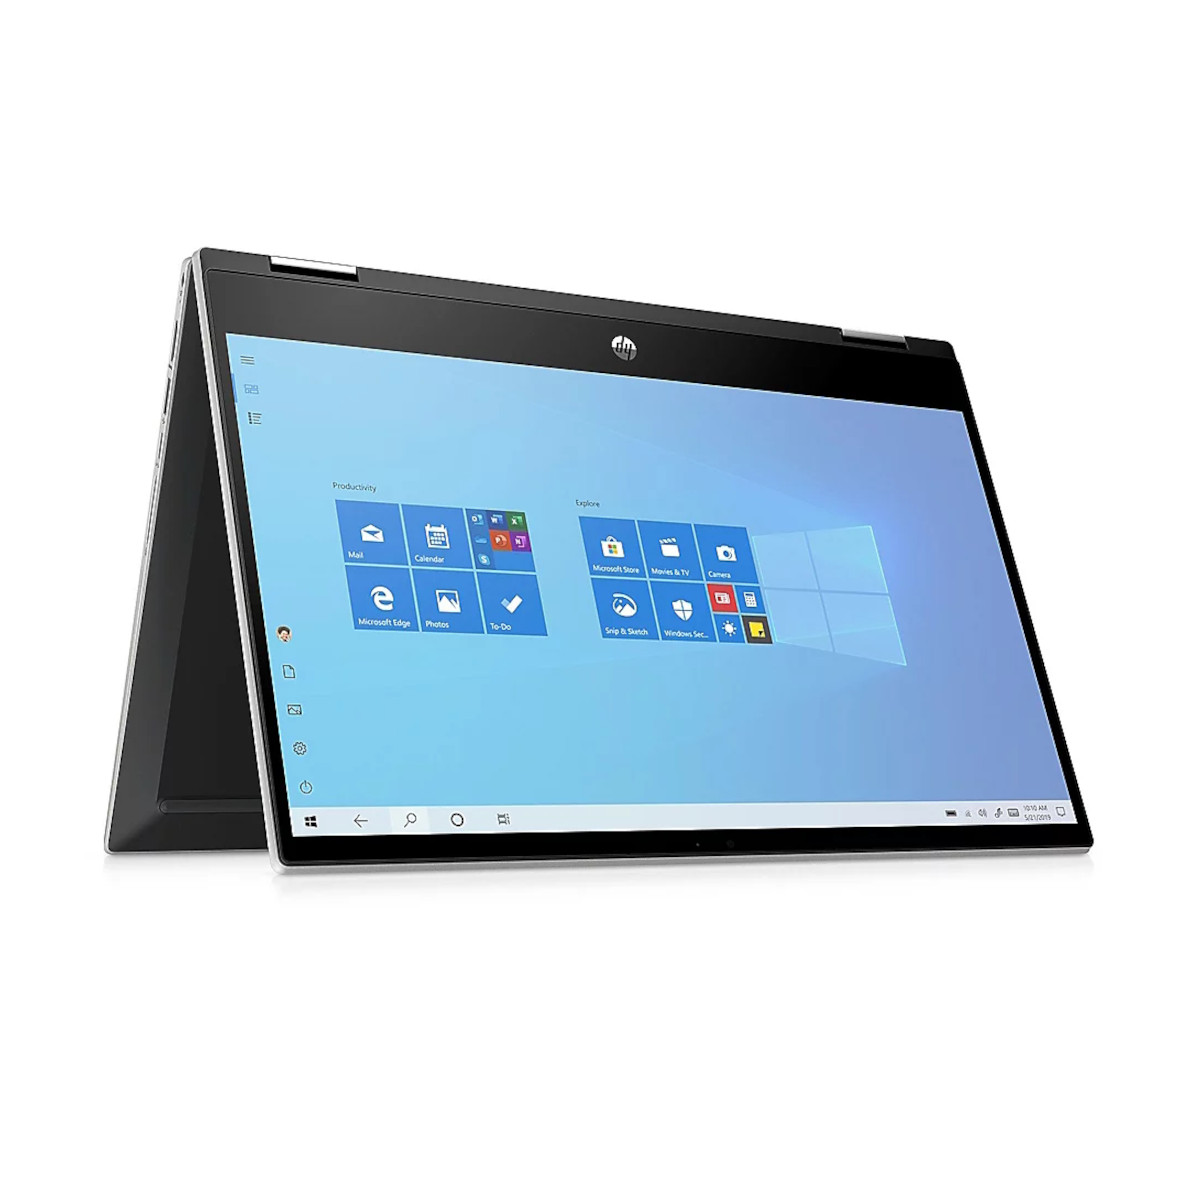 HP 14 x360 - Convertible (2-in-1) - Intel Core i5 - 14""